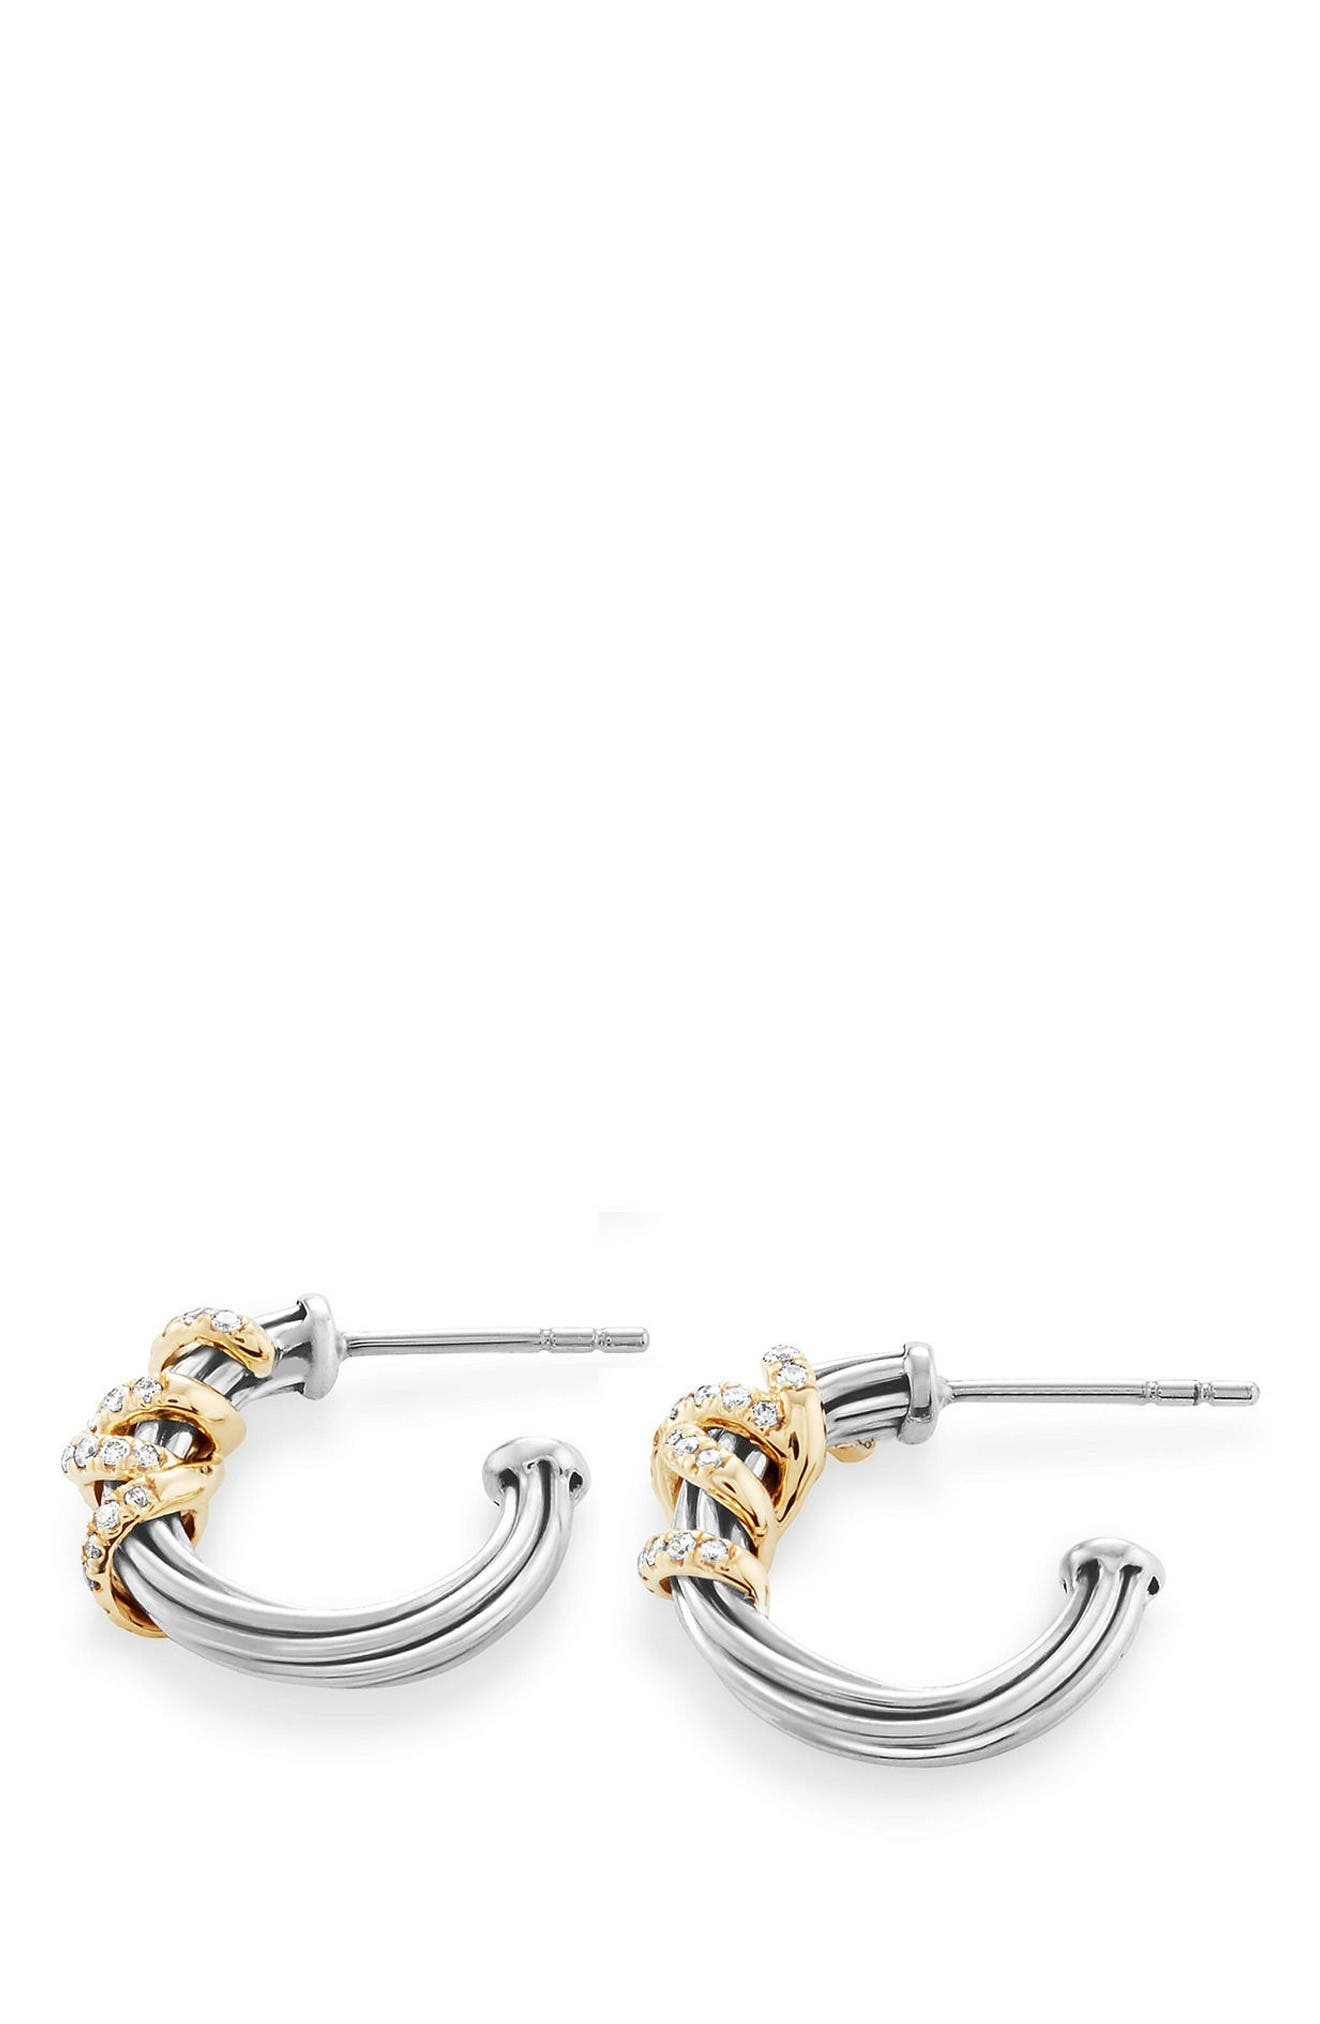 Helena Small Hoop Earrings with Diamonds & 18K Gold,                             Alternate thumbnail 2, color,                             Silver/ Gold